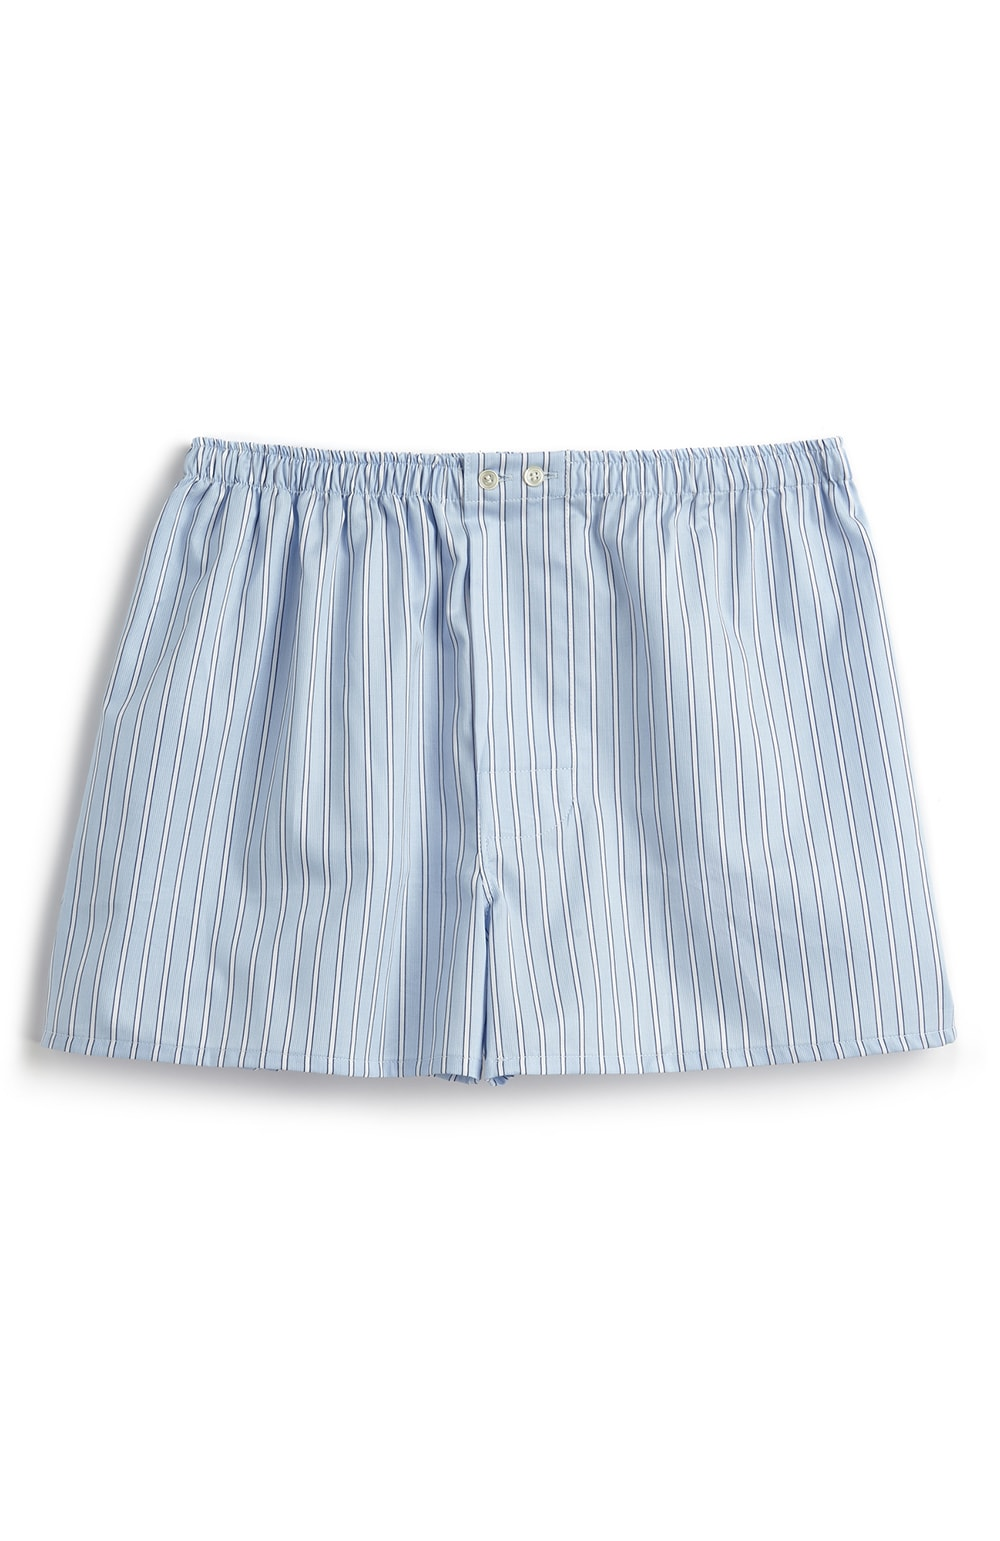 TWO-FOLD BOXER SHORTS - TF27